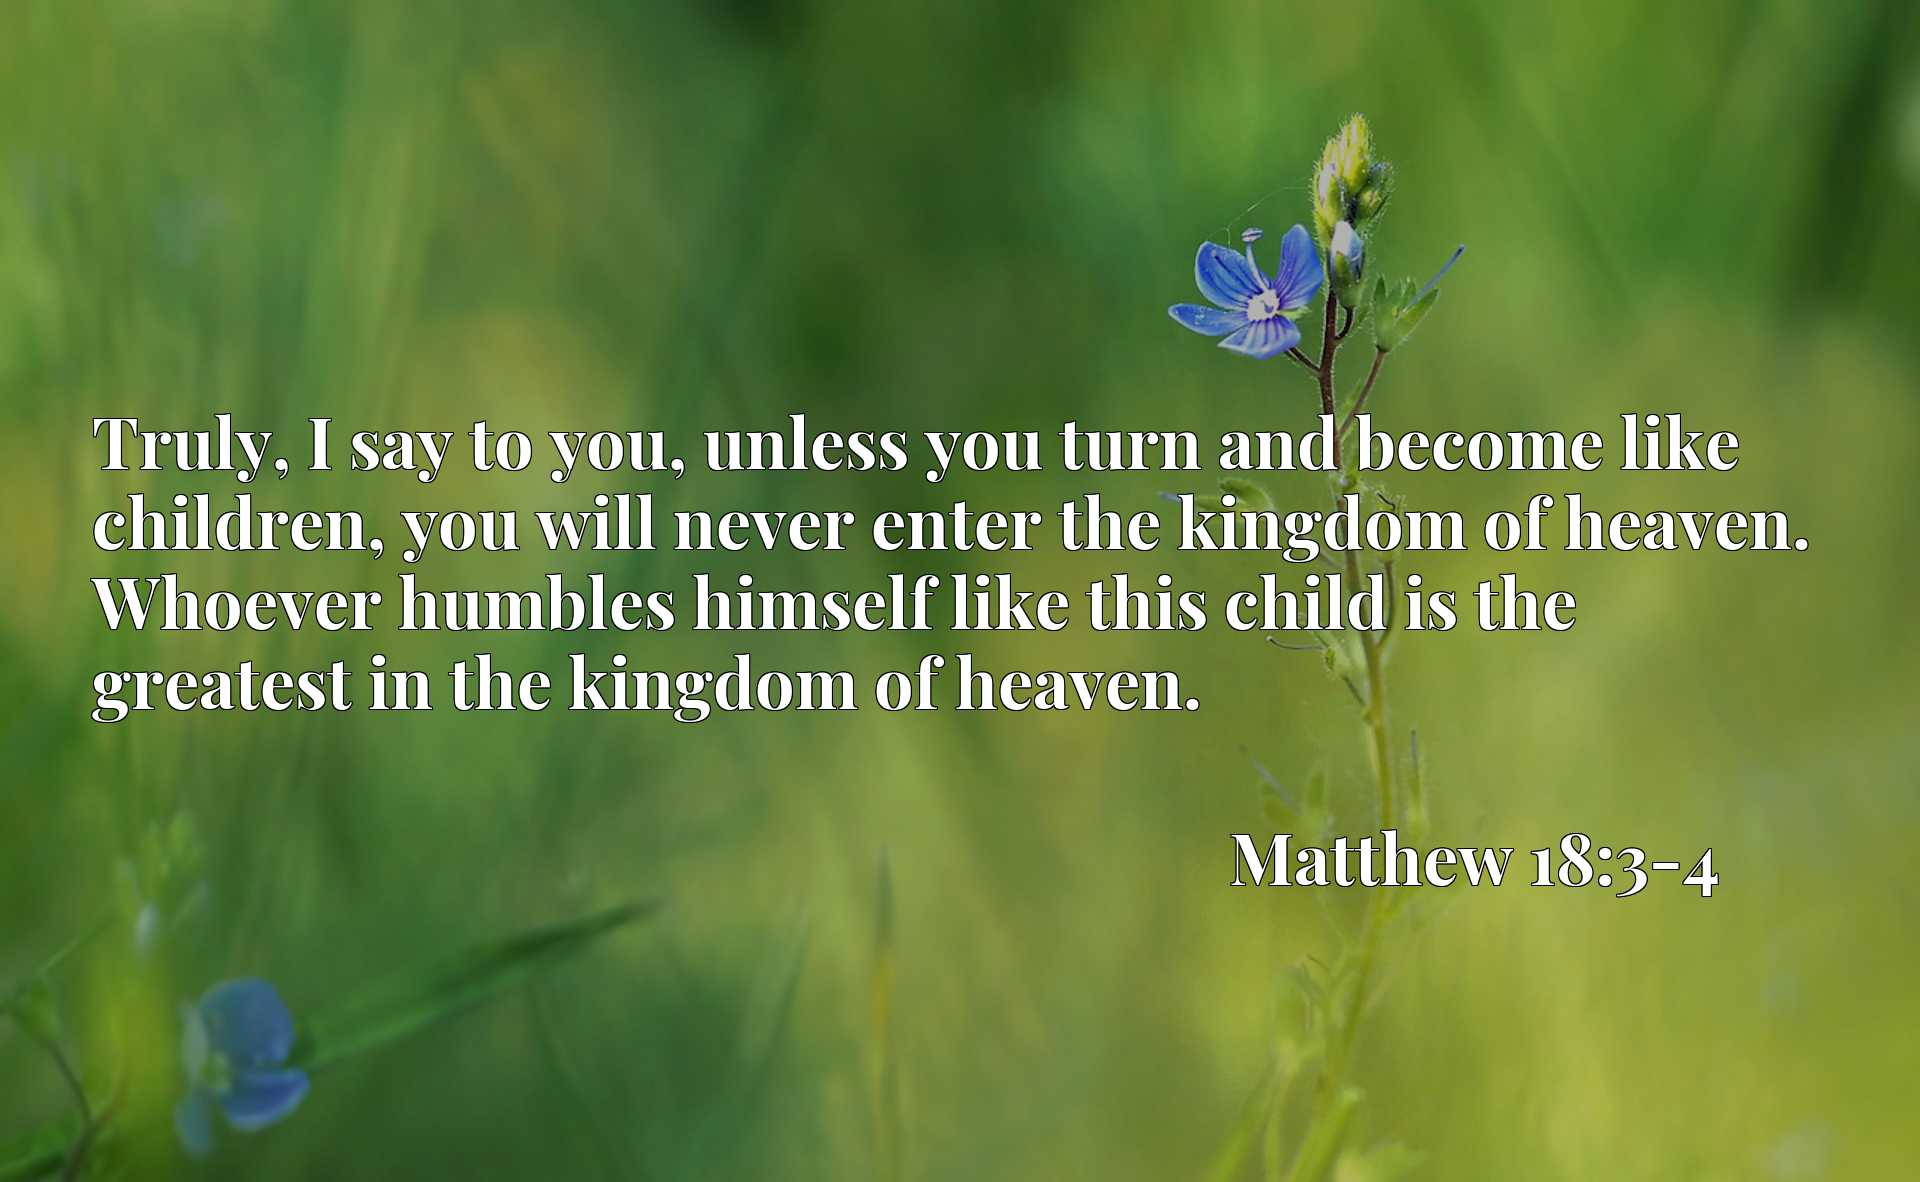 Truly, I say to you, unless you turn and become like children, you will never enter the kingdom of heaven. Whoever humbles himself like this child is the greatest in the kingdom of heaven.